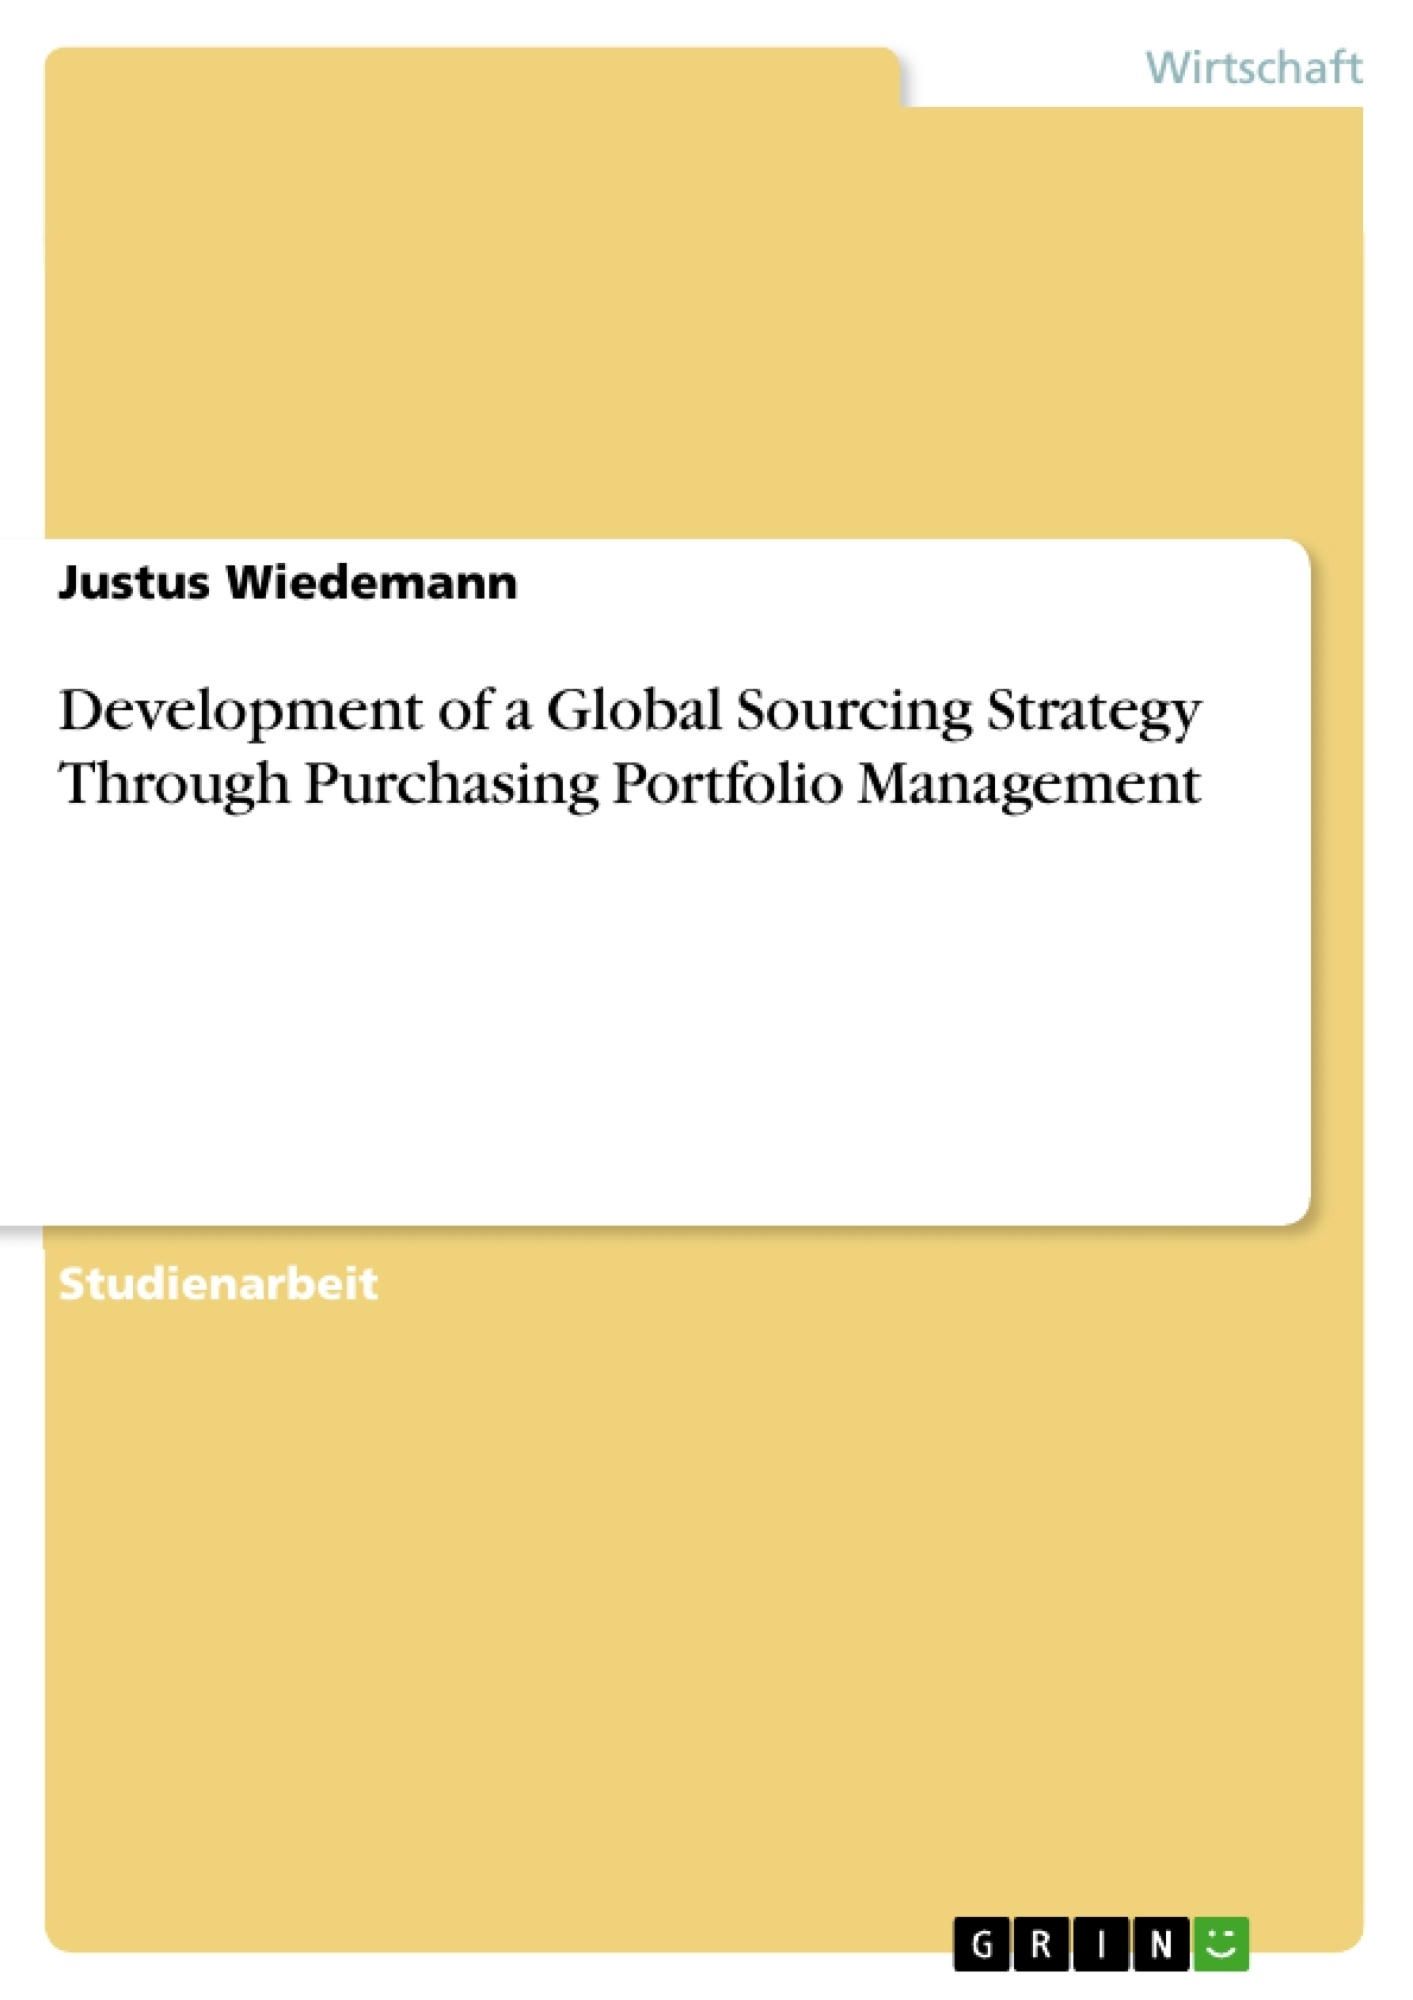 Titel: Development of a Global Sourcing Strategy Through Purchasing Portfolio Management